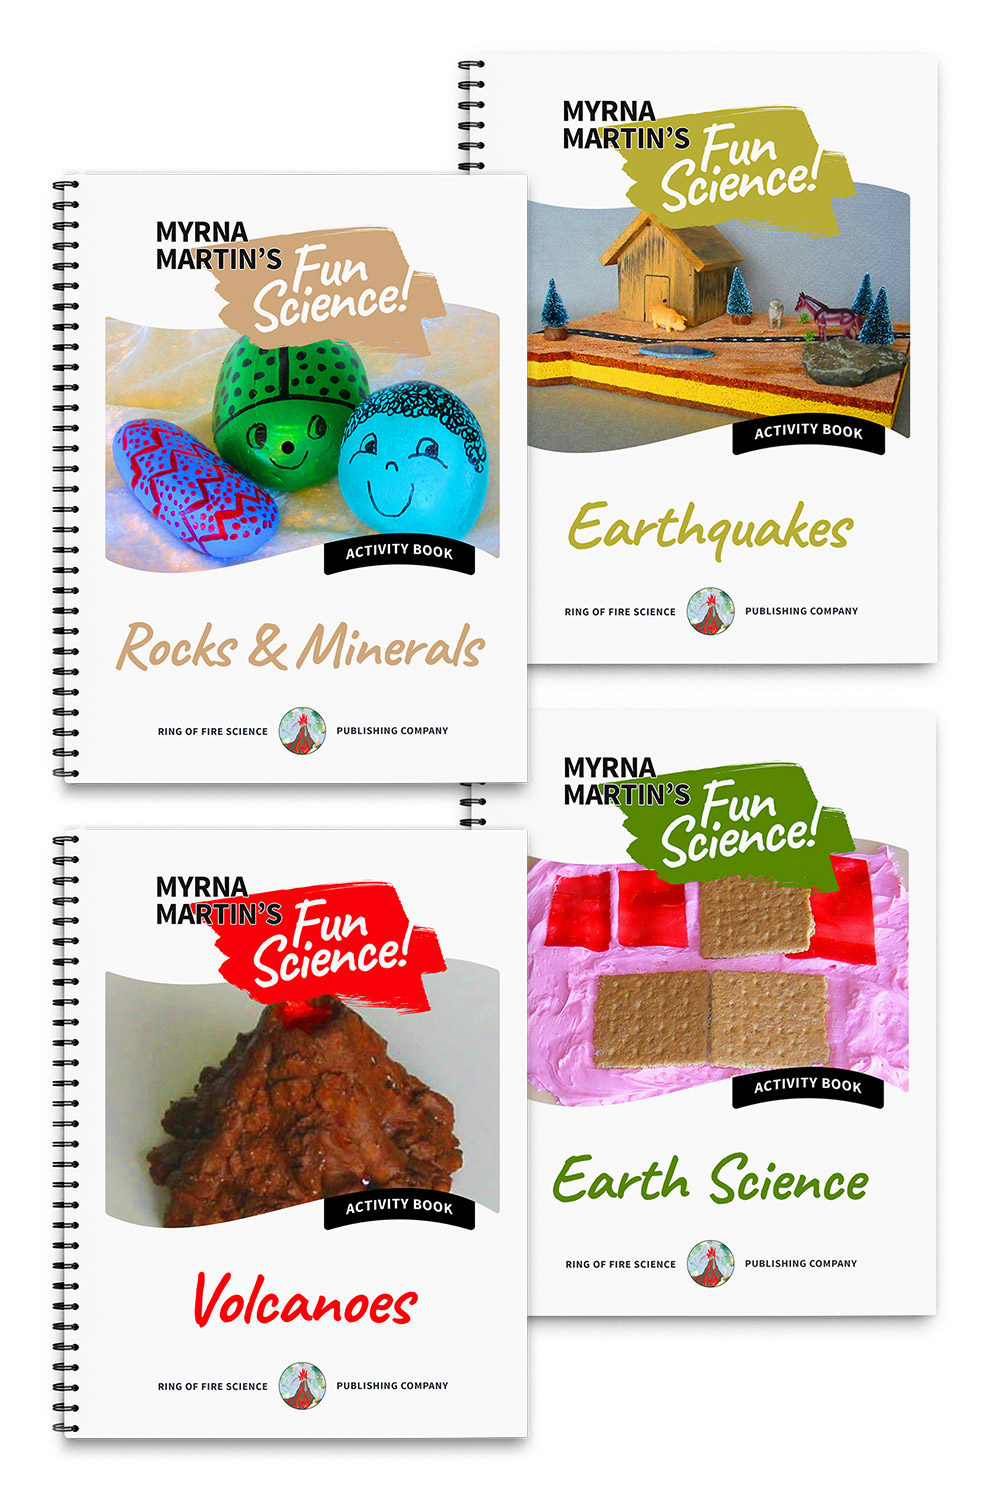 Myrna Martin Fun Activity Books Package 1